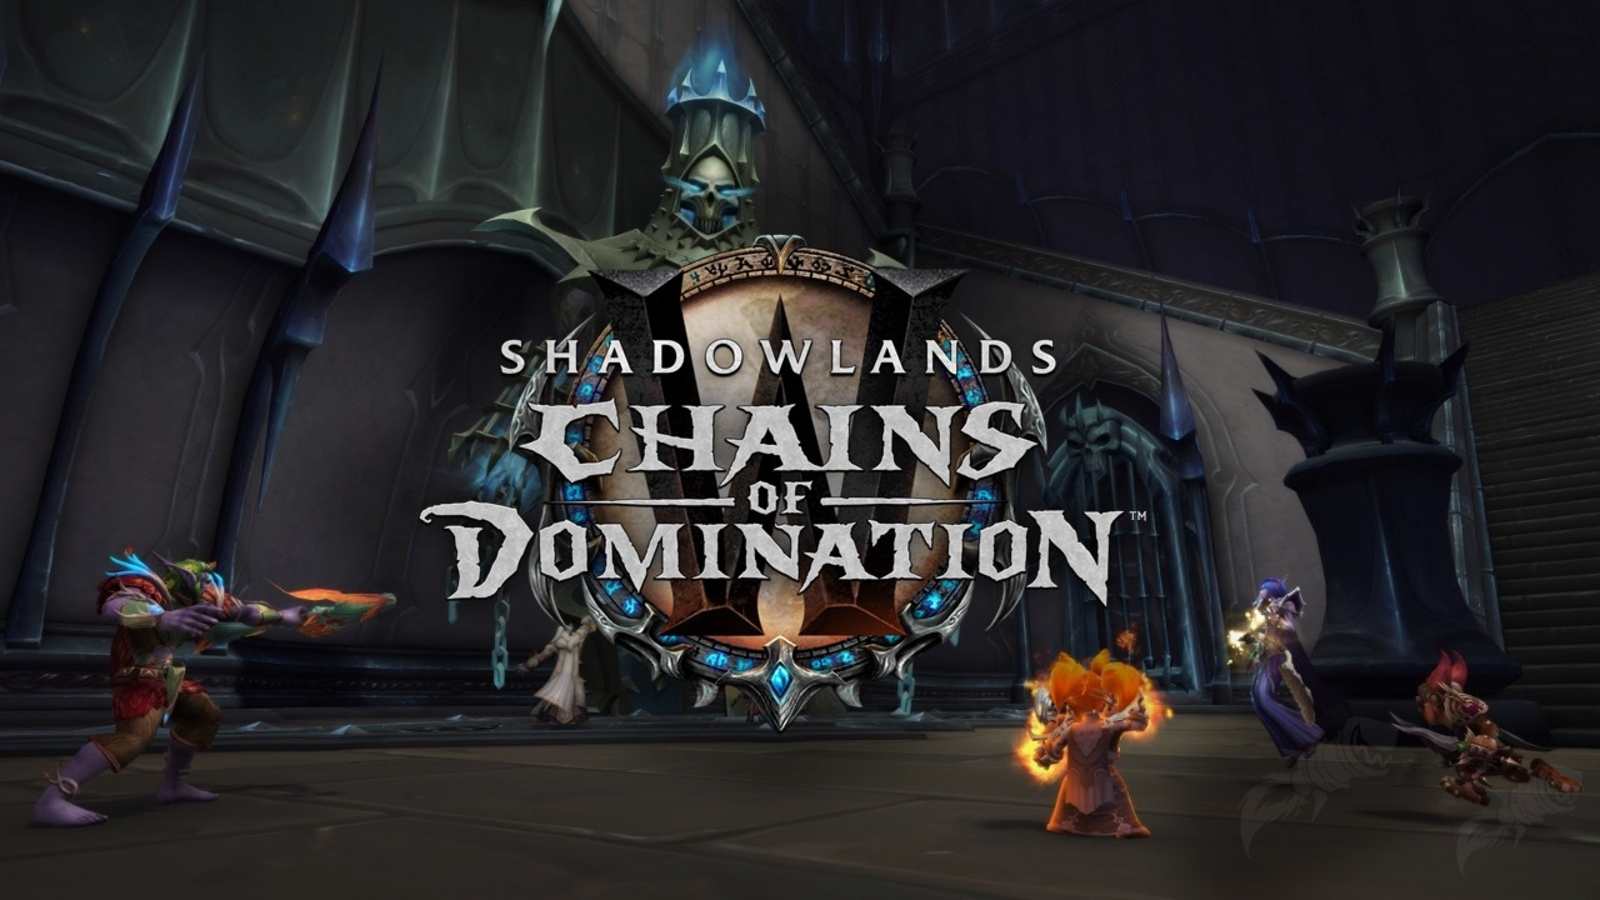 WoW_World_of_Warcraft_Shadowlands_BlizzConline_Leak_New_Content_Patch_Chains_of_Domination